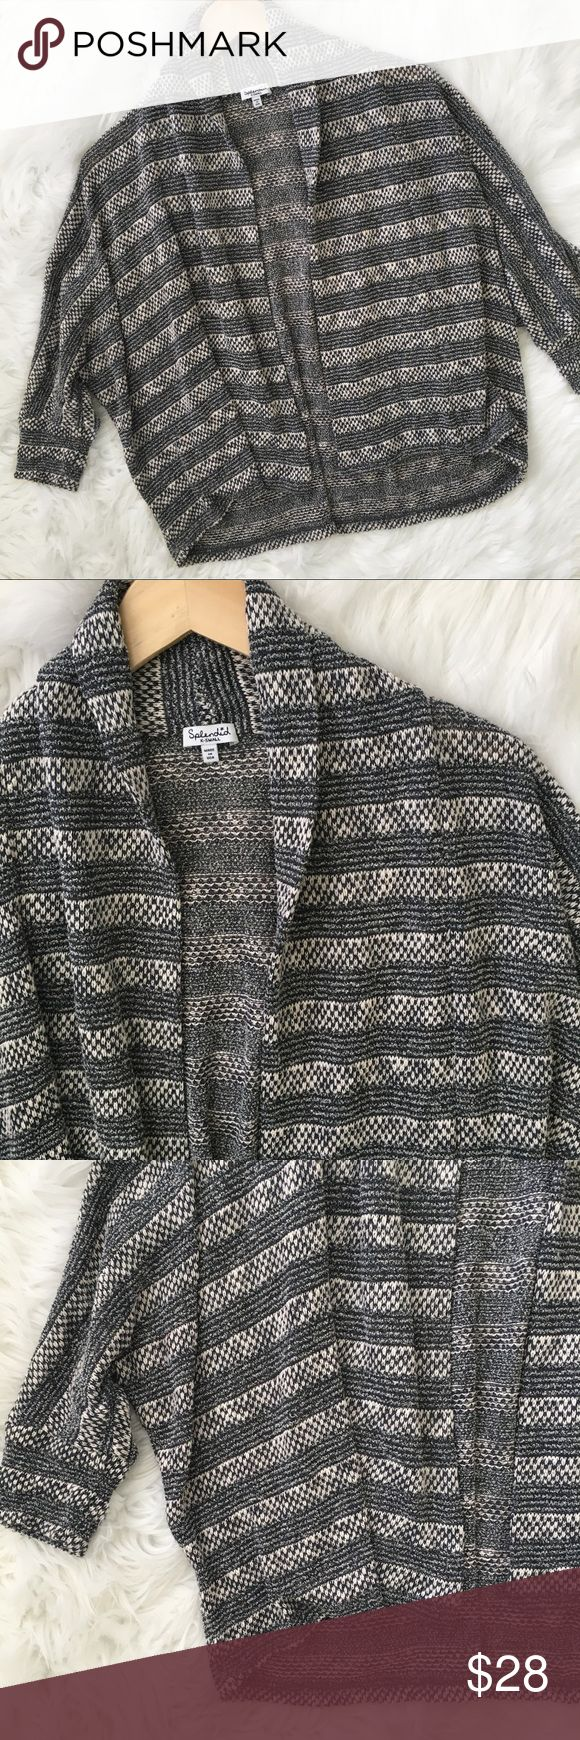 Splendid Blue and White Striped Cardigan Splendid blue and white cardigan. 3/4 length sleeve. In very good condition.   ⭐️10% off 2+ bundle  ⭐️Size XS  ⭐️No stains or flaws ⭐️Item Shelf Splendid Sweaters Cardigans